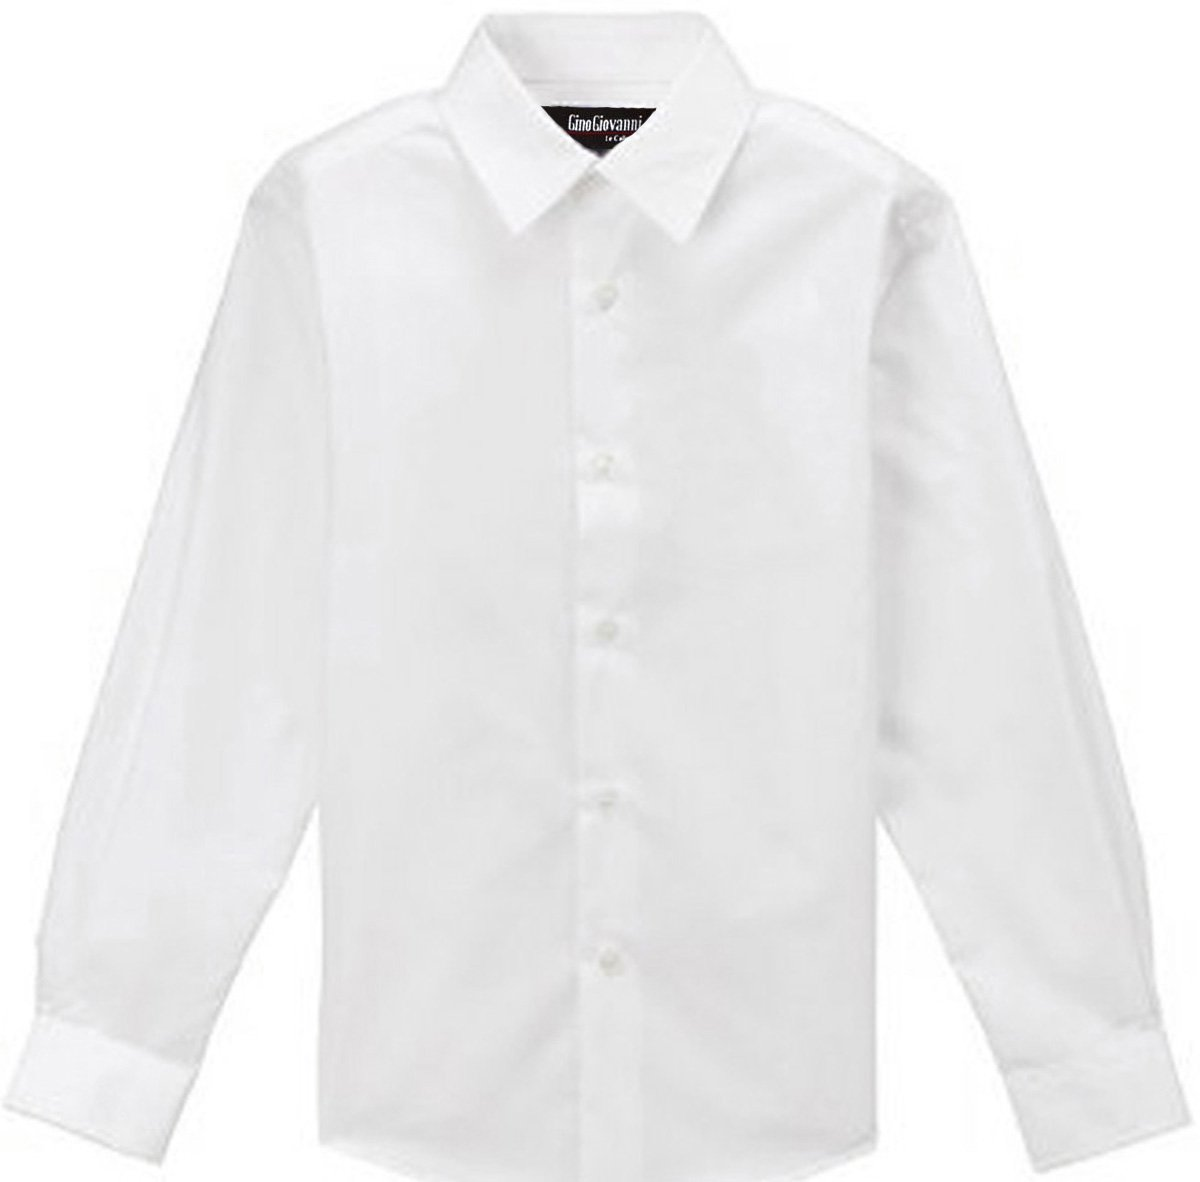 WHITE SHIRT for Boys Gino Formal Dress Shirt From Baby to Teen (4T)